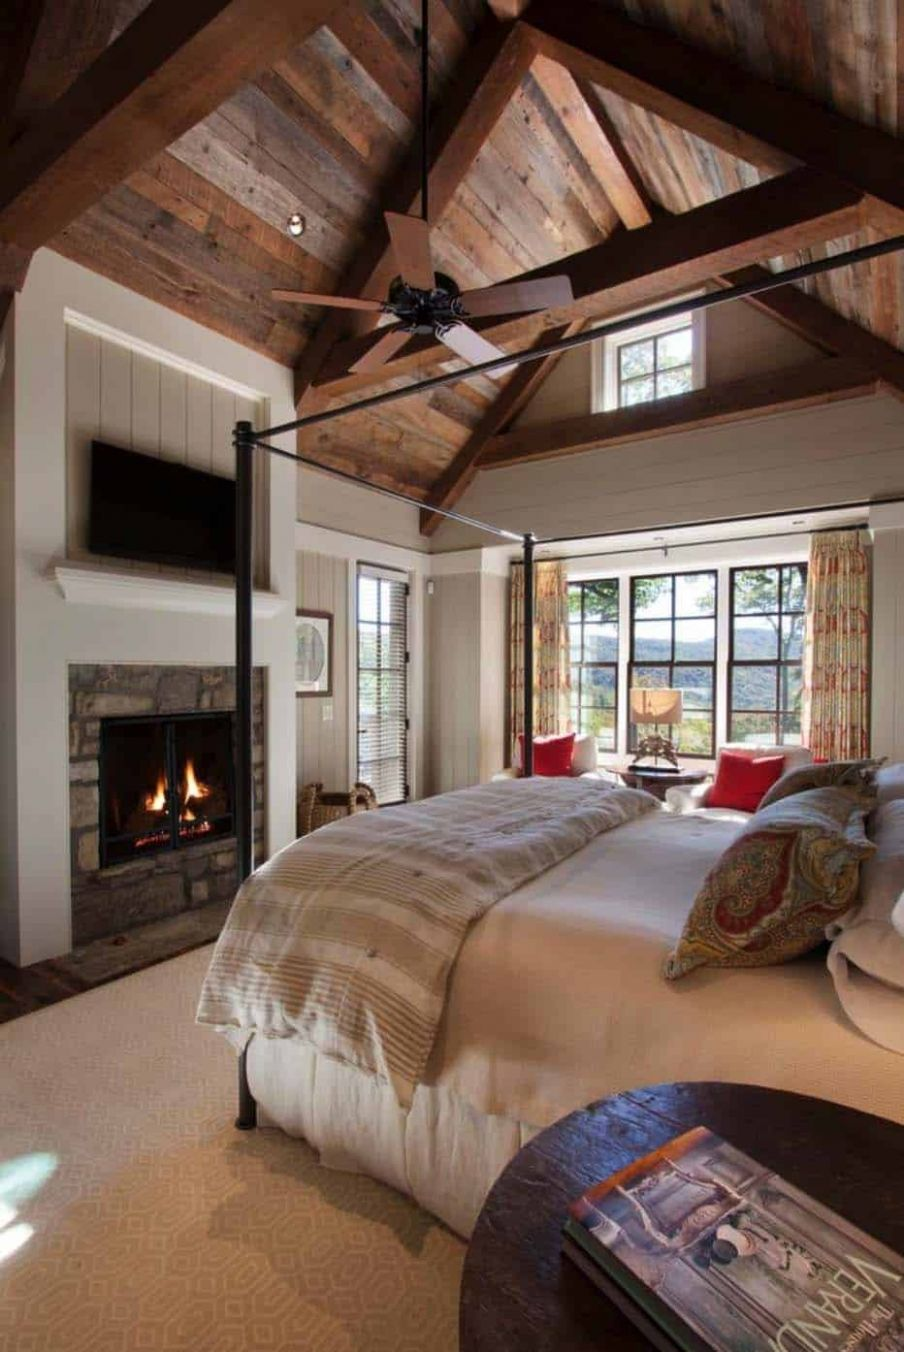 10+ Vaulted Ceiling Ideas to Make Spaciousness in Style - bedroom ideas vaulted ceiling